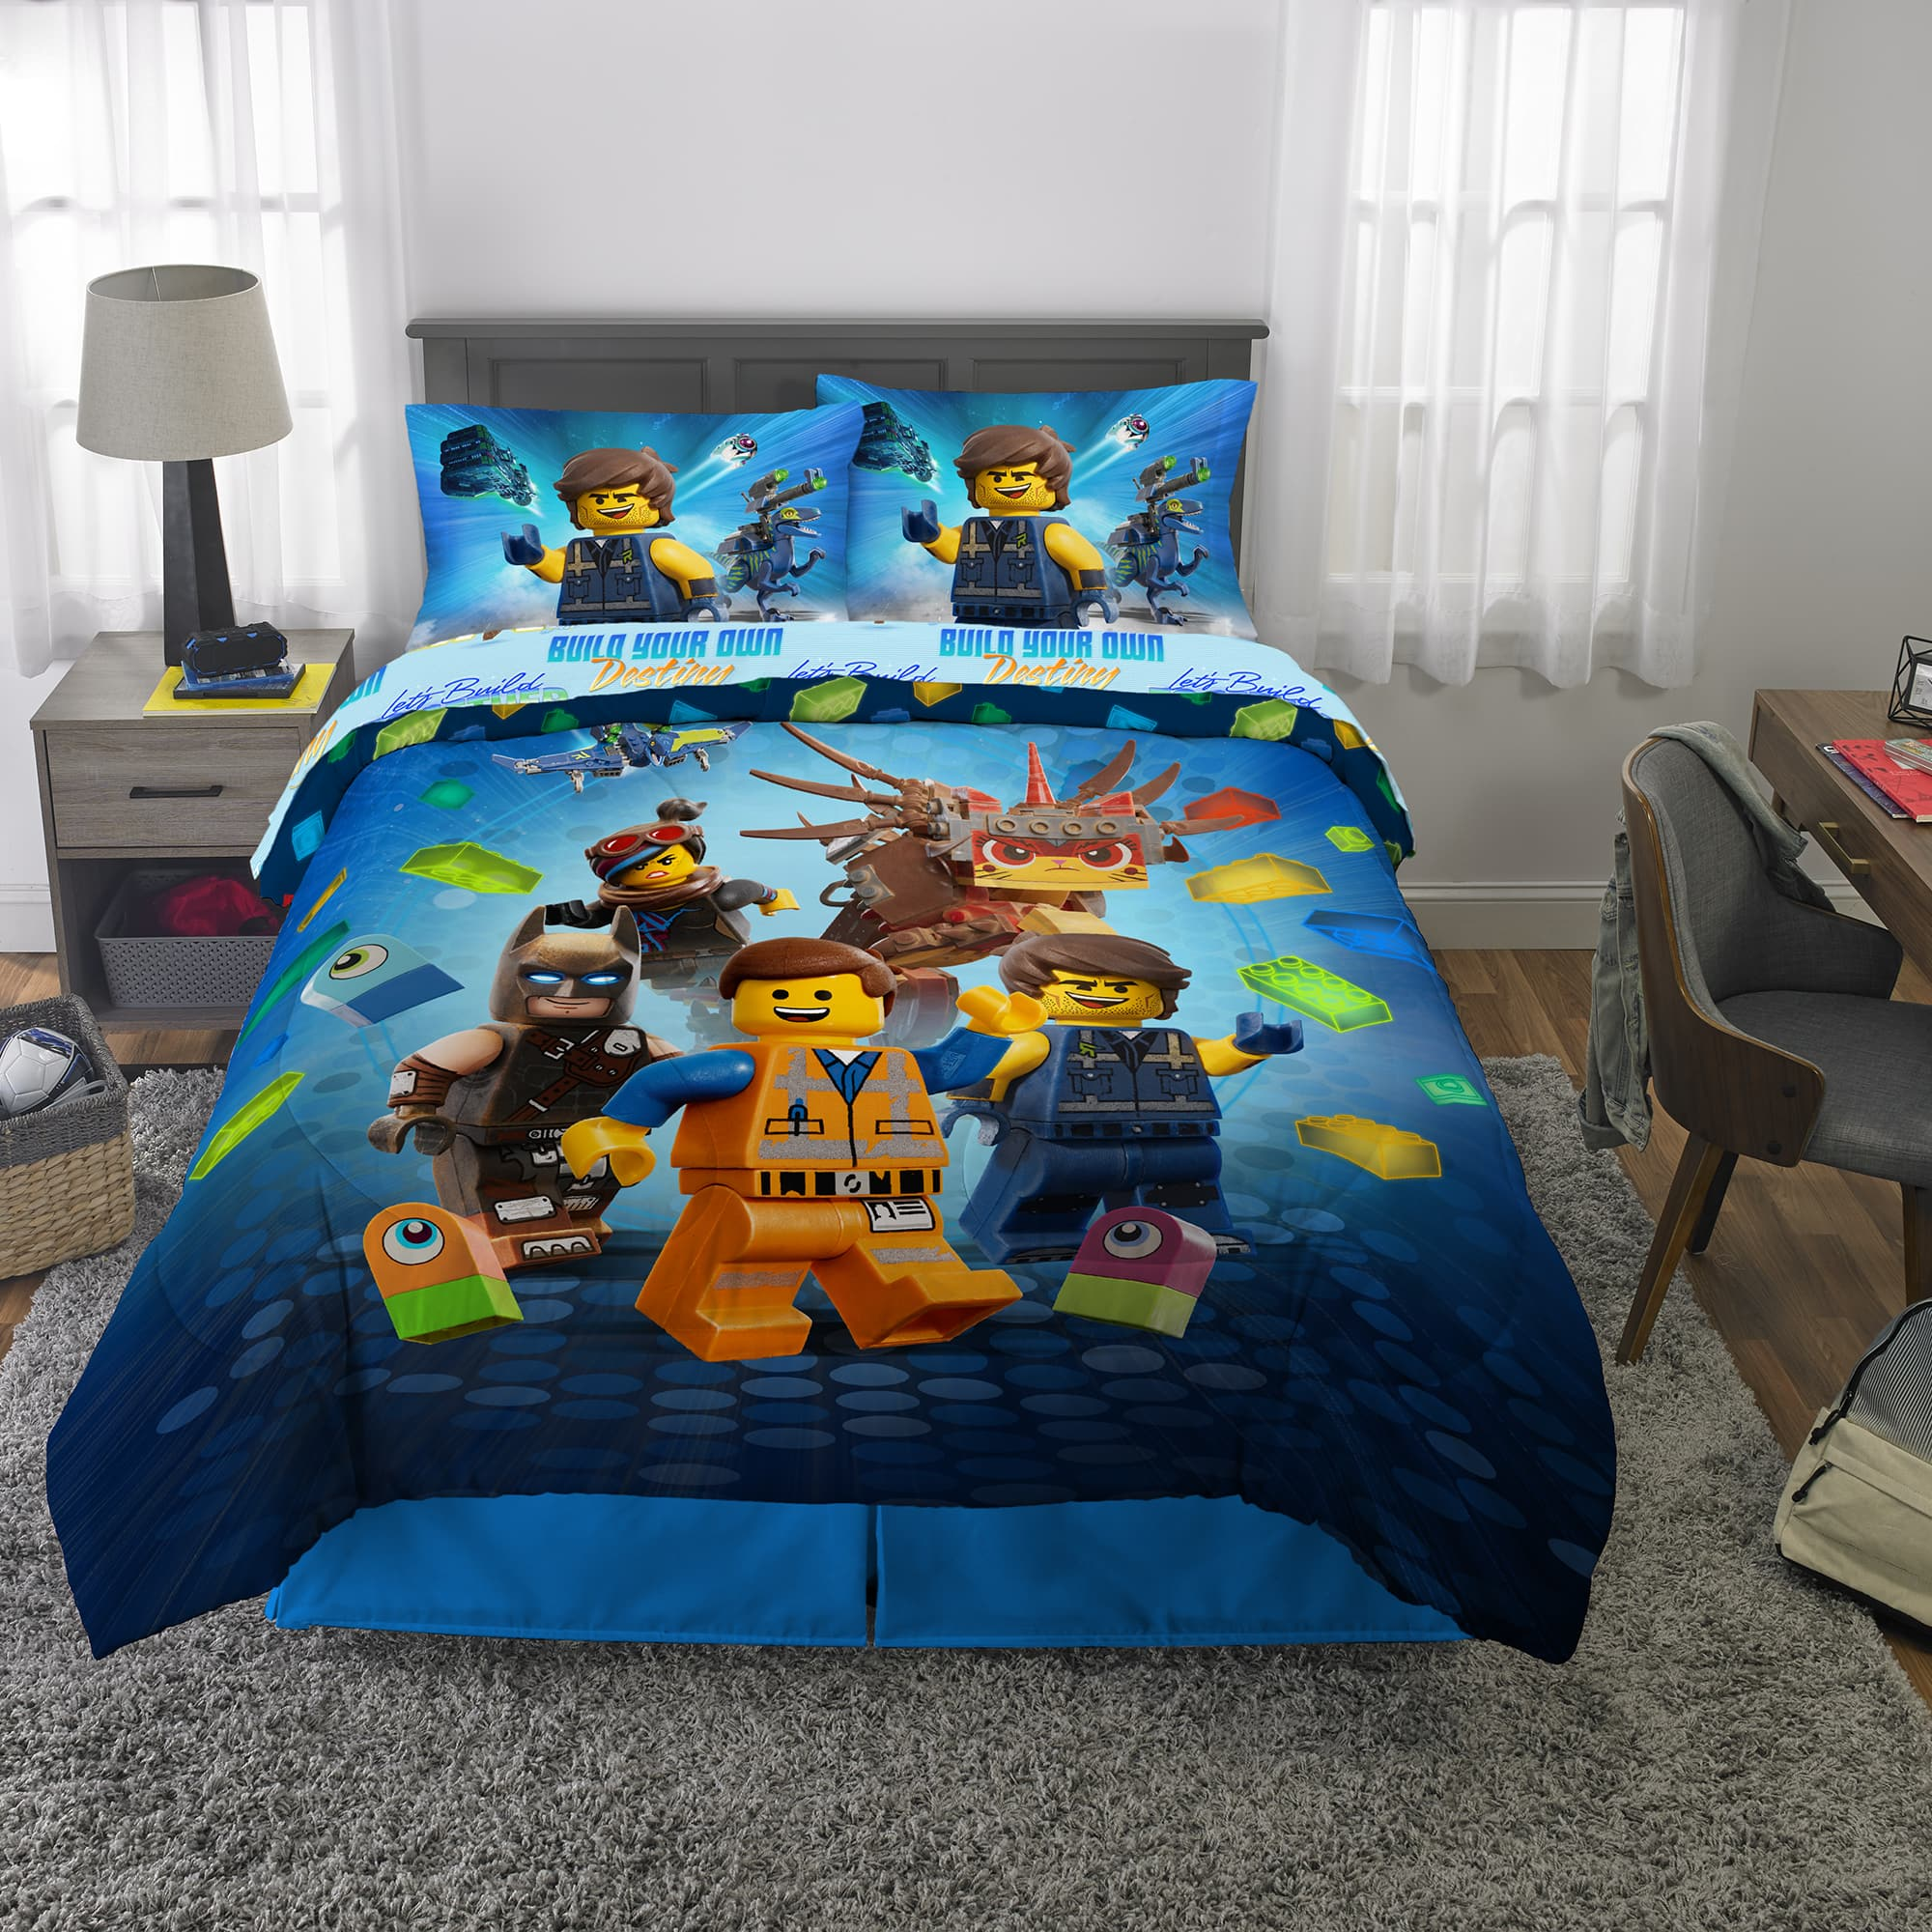 5-Pc Lego Movie 2 Bed-in-a-Bag, Kids Bedding Bundle Set $45 + Free shipping